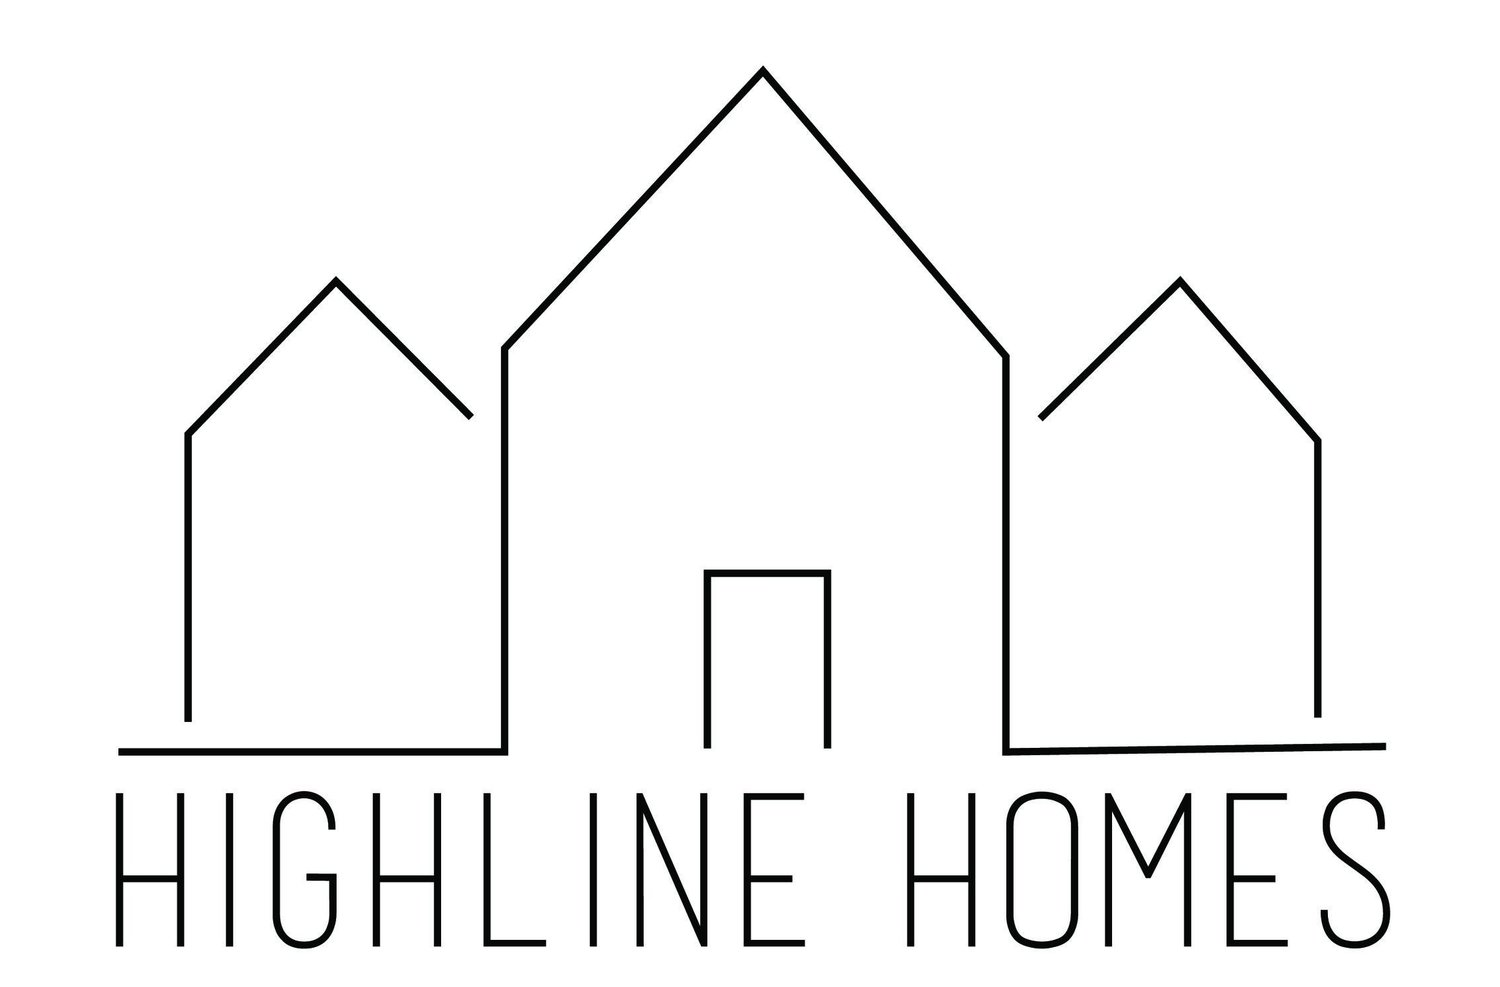 Highline Homes